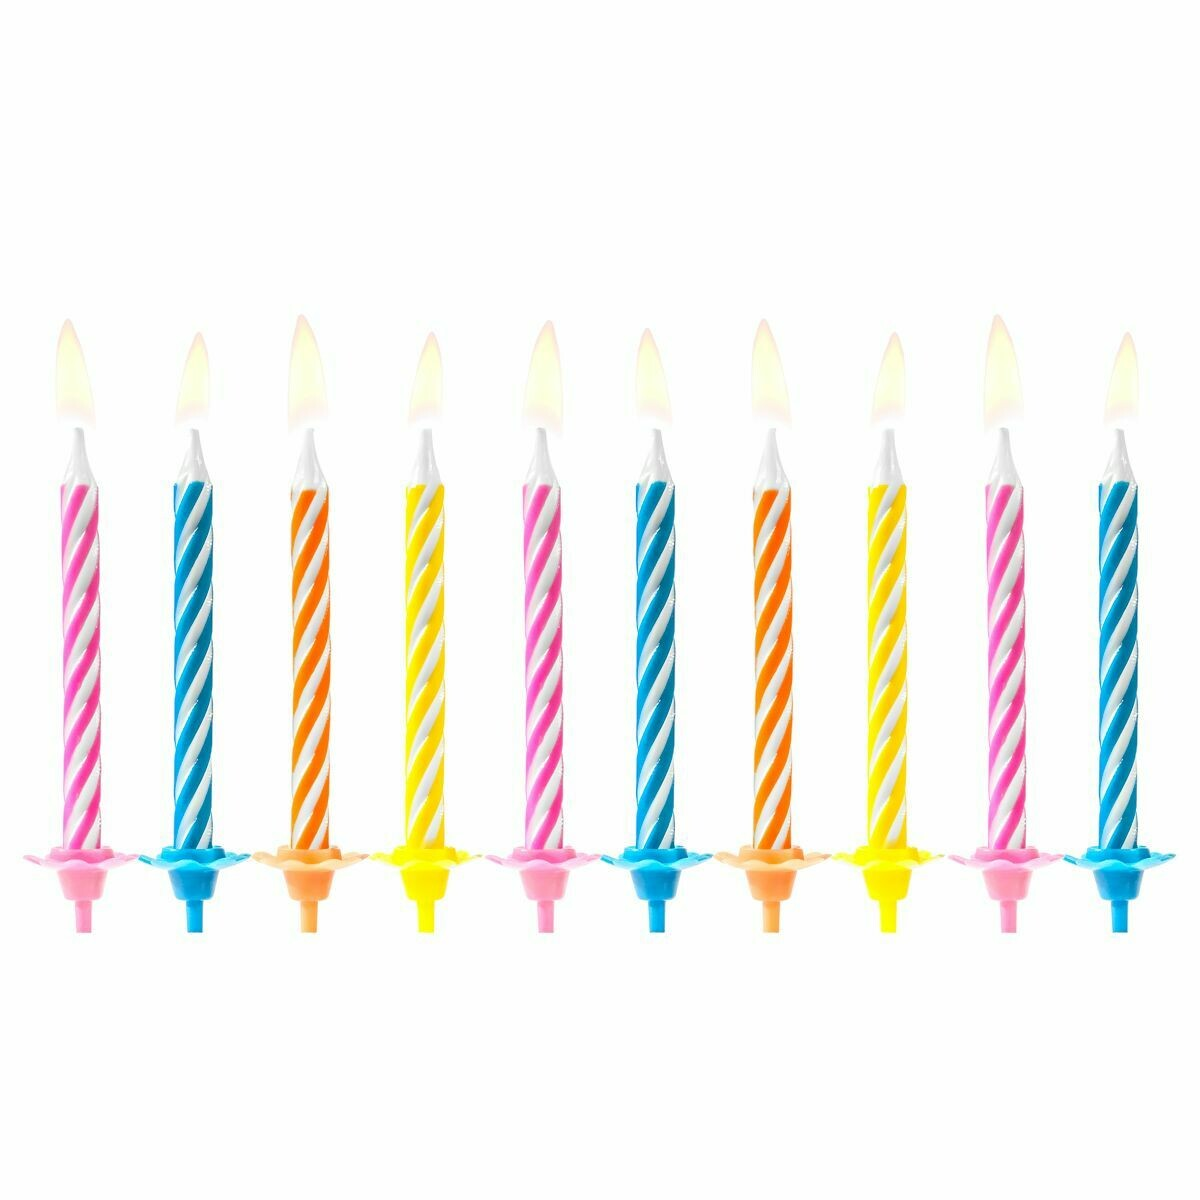 PartyDeco Birthday Candles -PARTY MIX 10 τεμ. - Κεράκια Πολύχρωμα